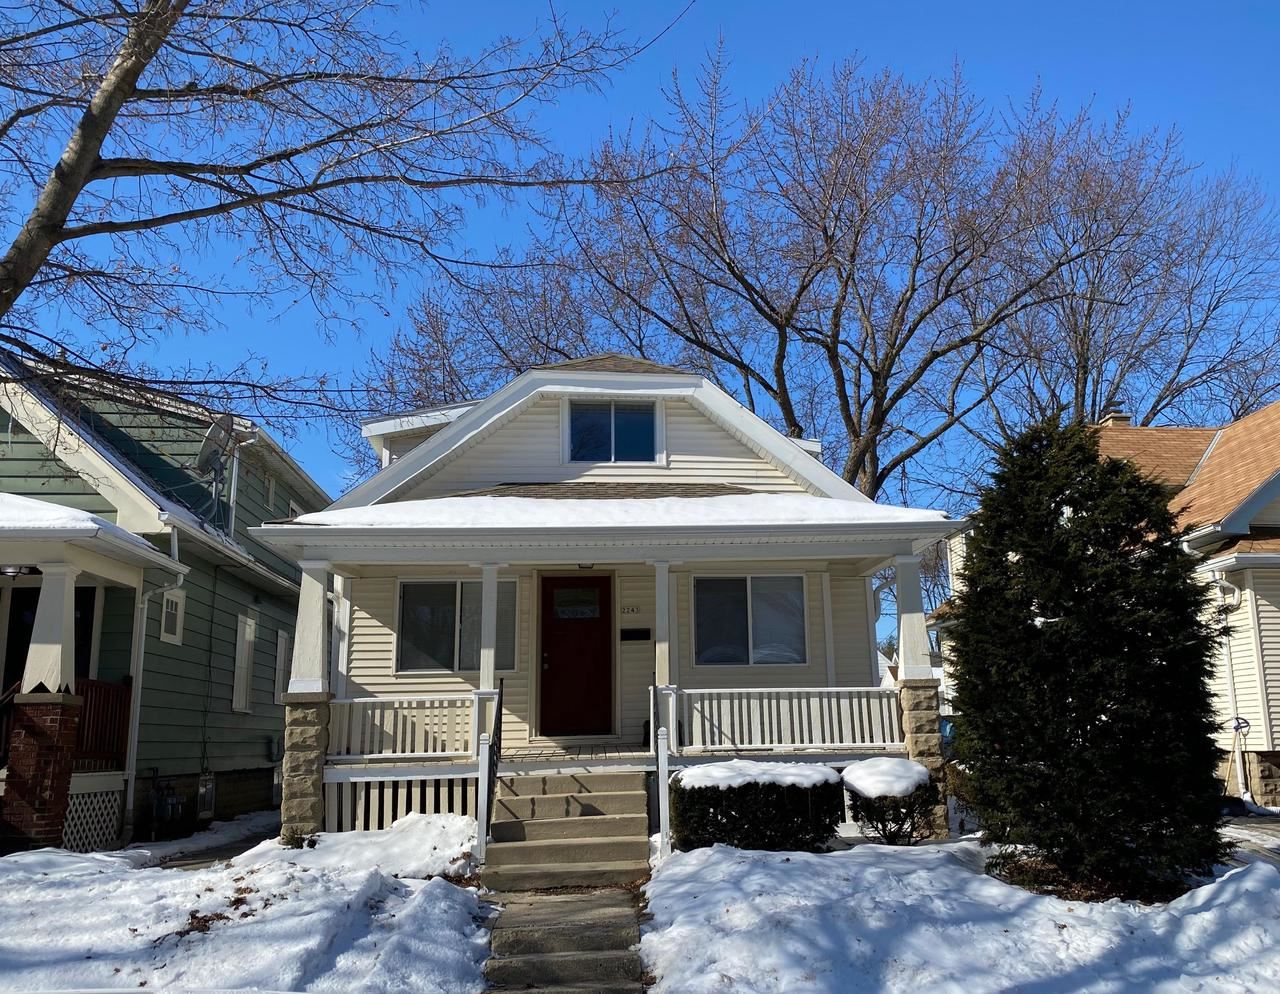 2243 S 63rd St, Milwaukee, WI 53219 - MLS#: 1678455